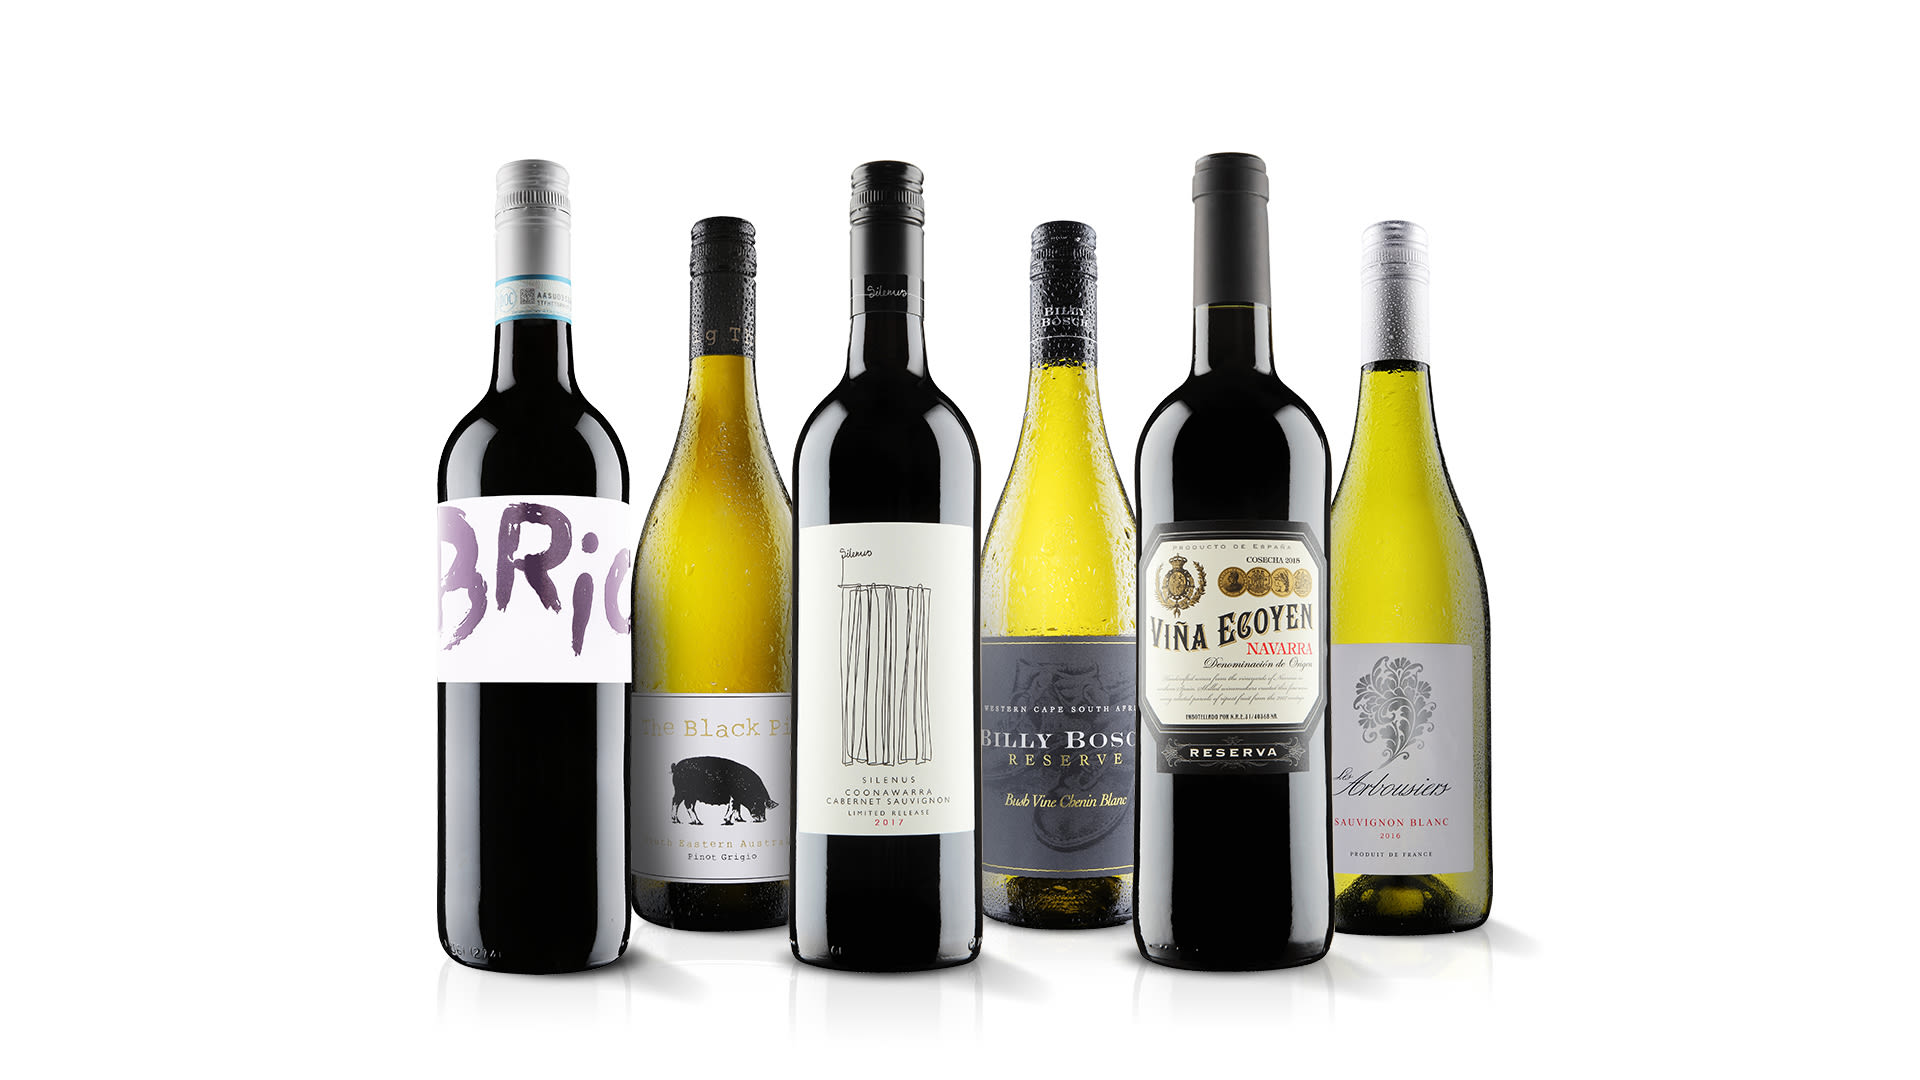 Six wines from Virgin Wines